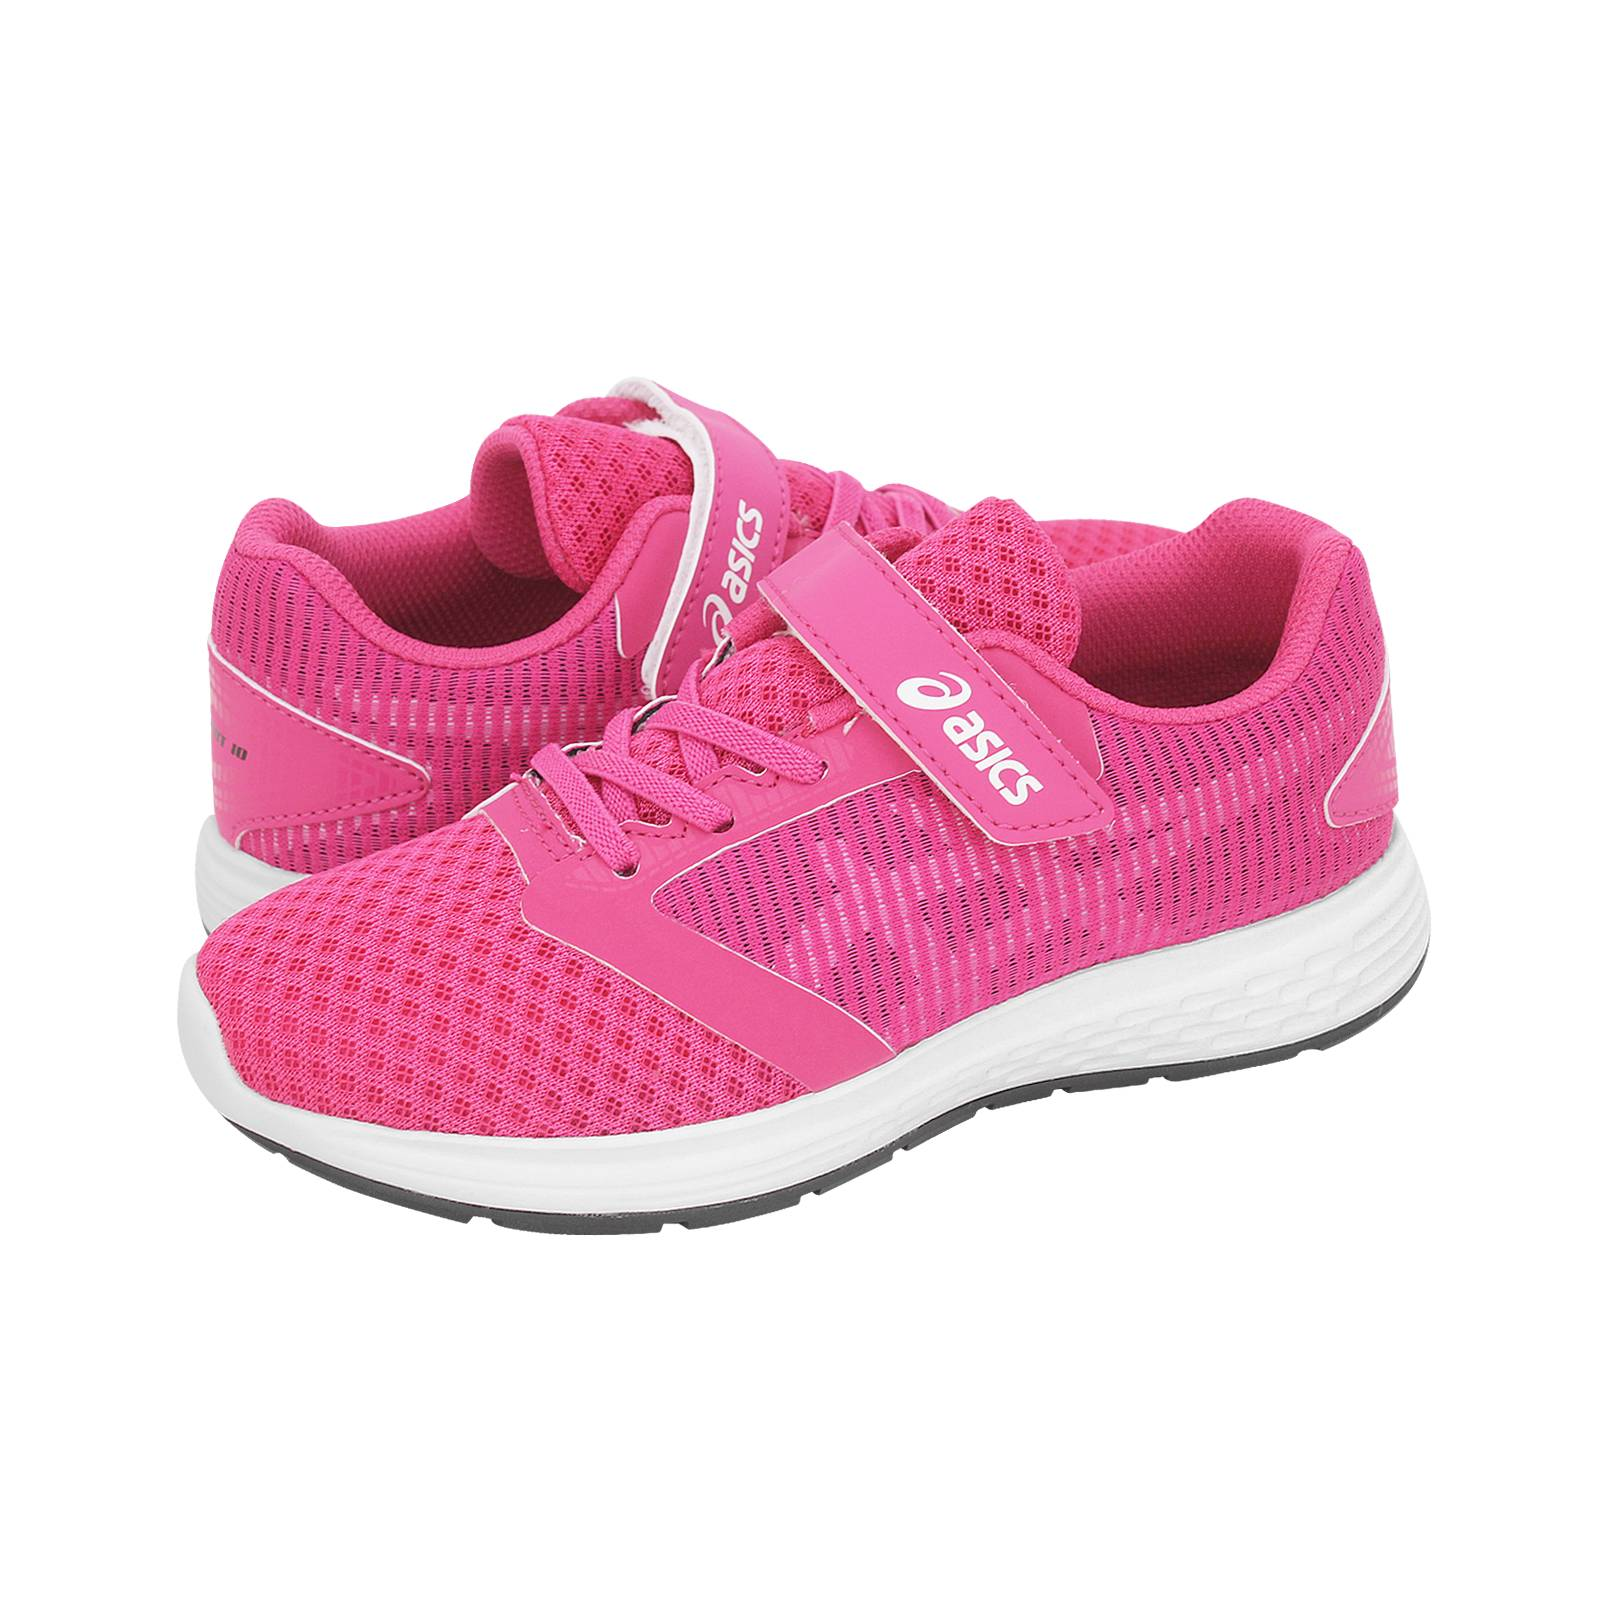 f800b039a9d Patriot 10 PS - Παιδικά αθλητικά παπούτσια Asics από υφασμα και ...